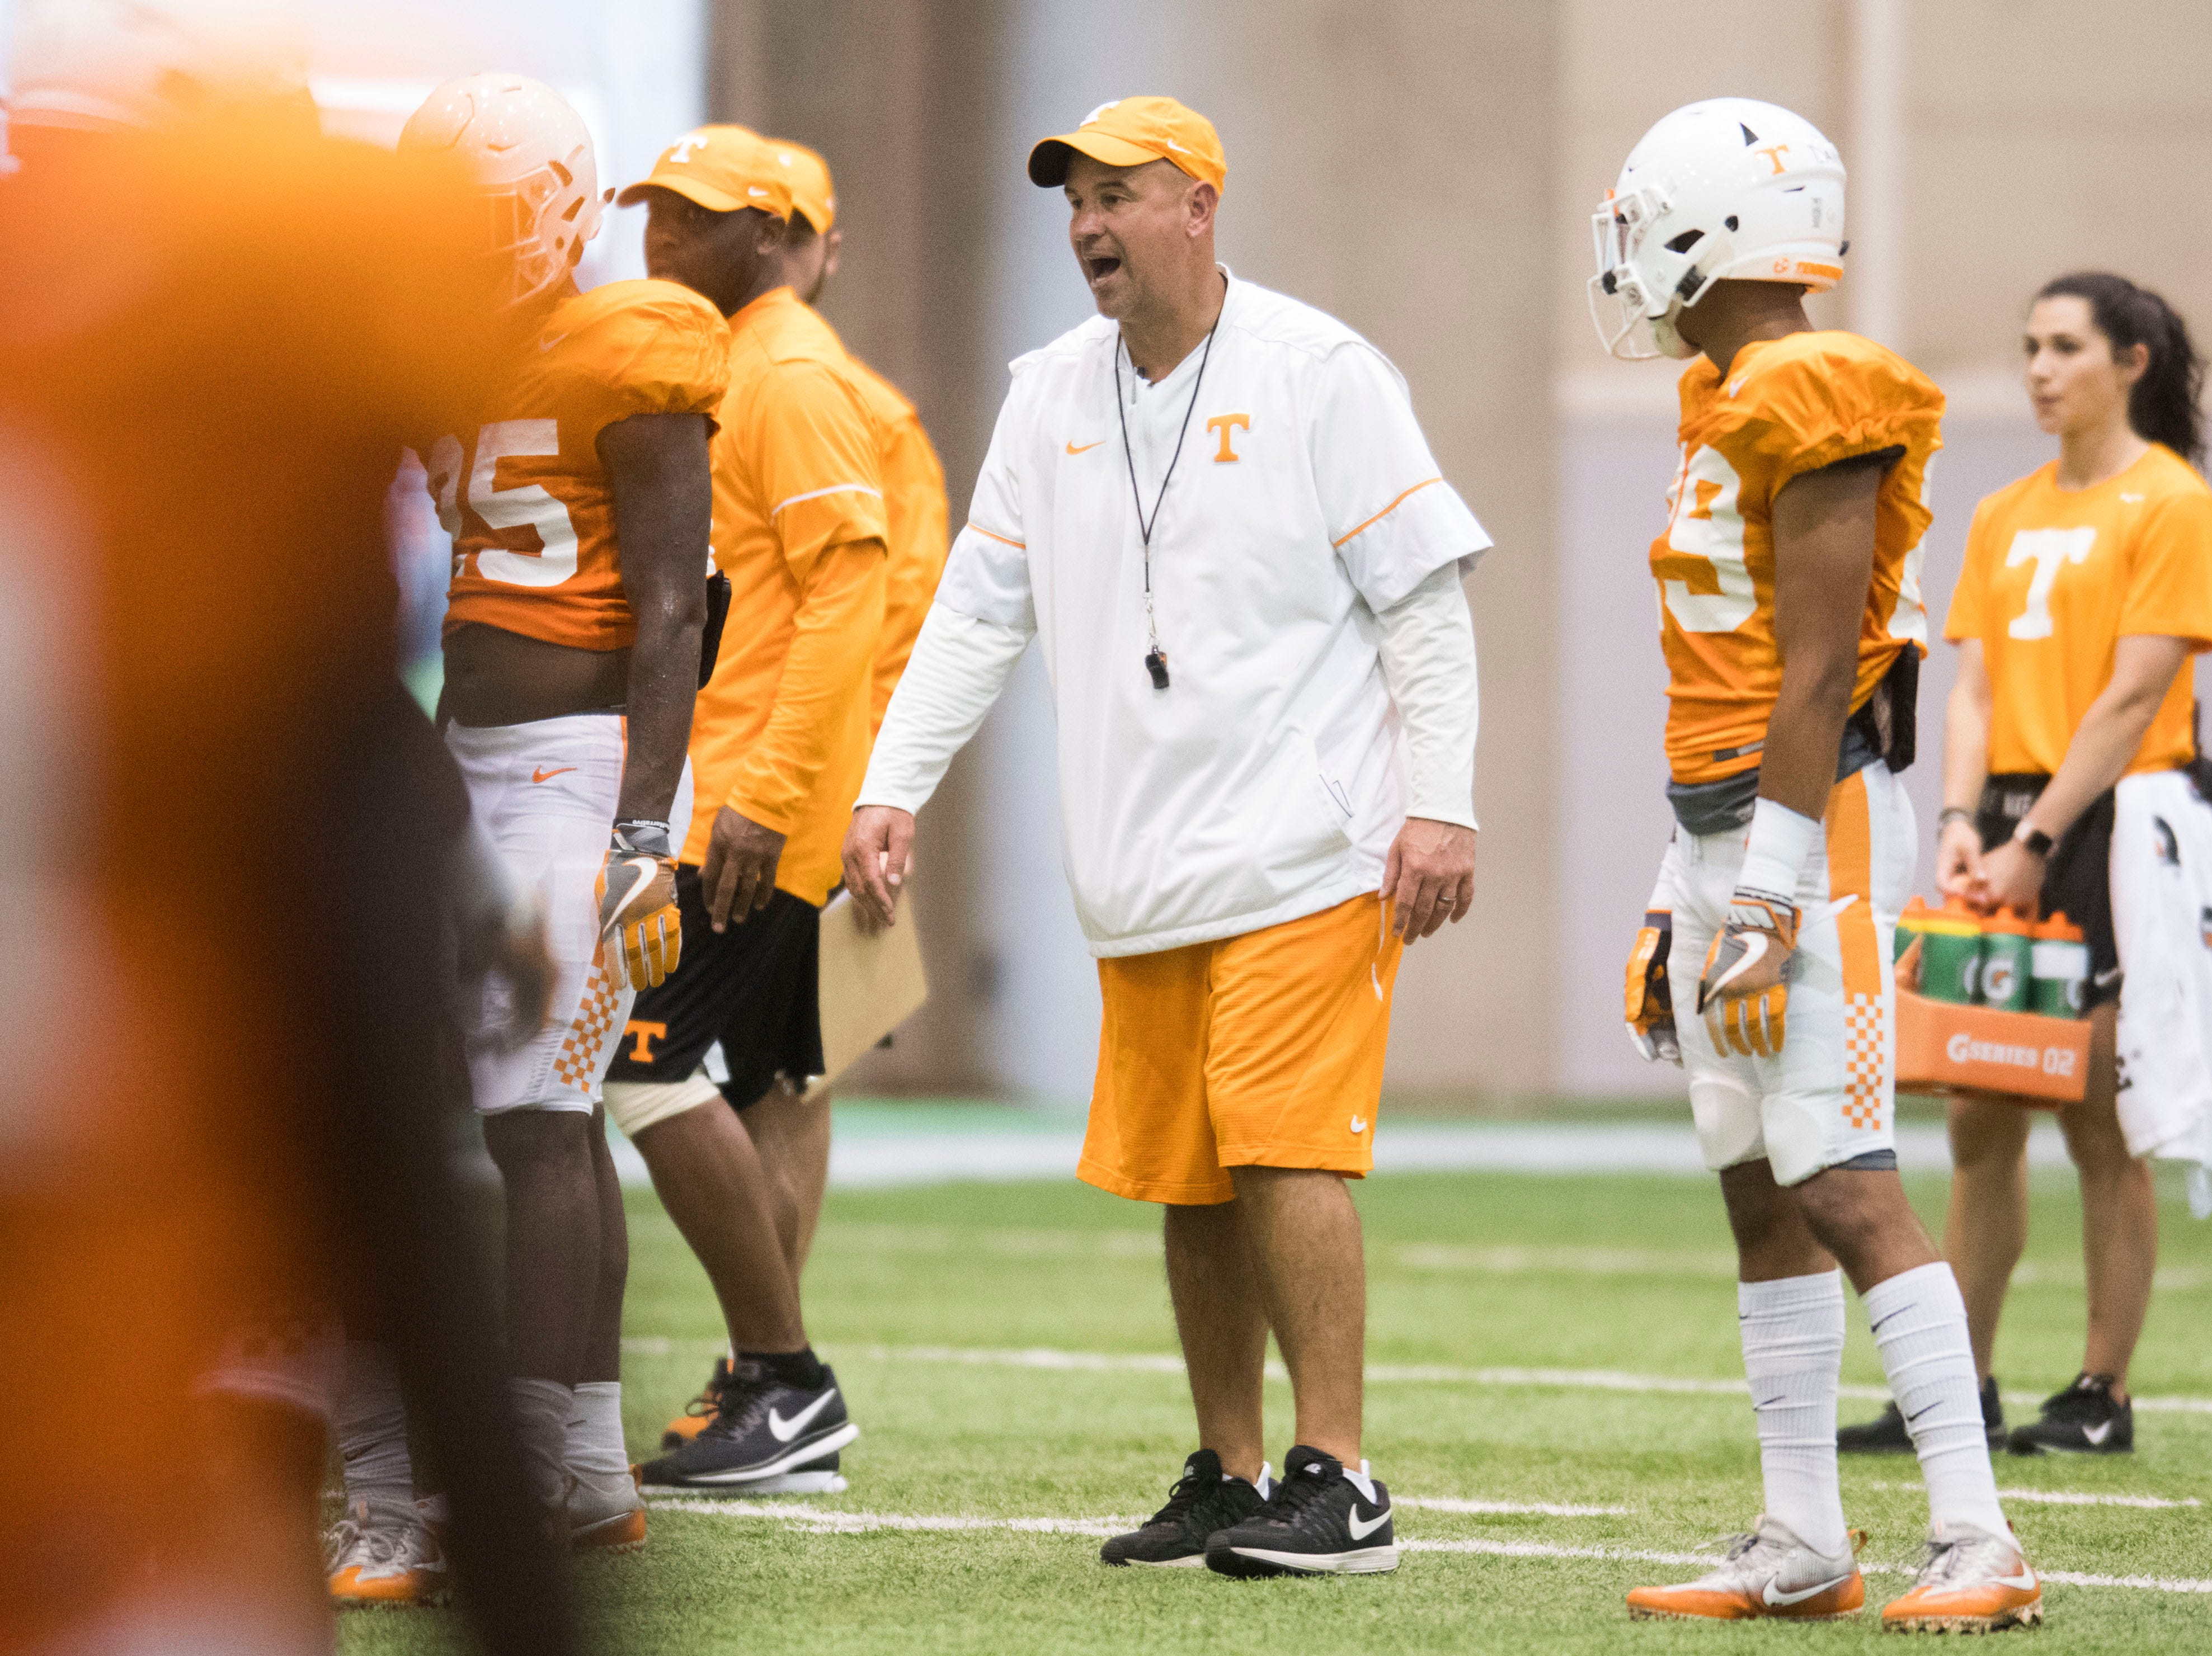 Tennessee Head Coach Jeremy Pruitt coaches on the field during UT Vols preseason football practice Wednesday, Aug. 8, 2018.